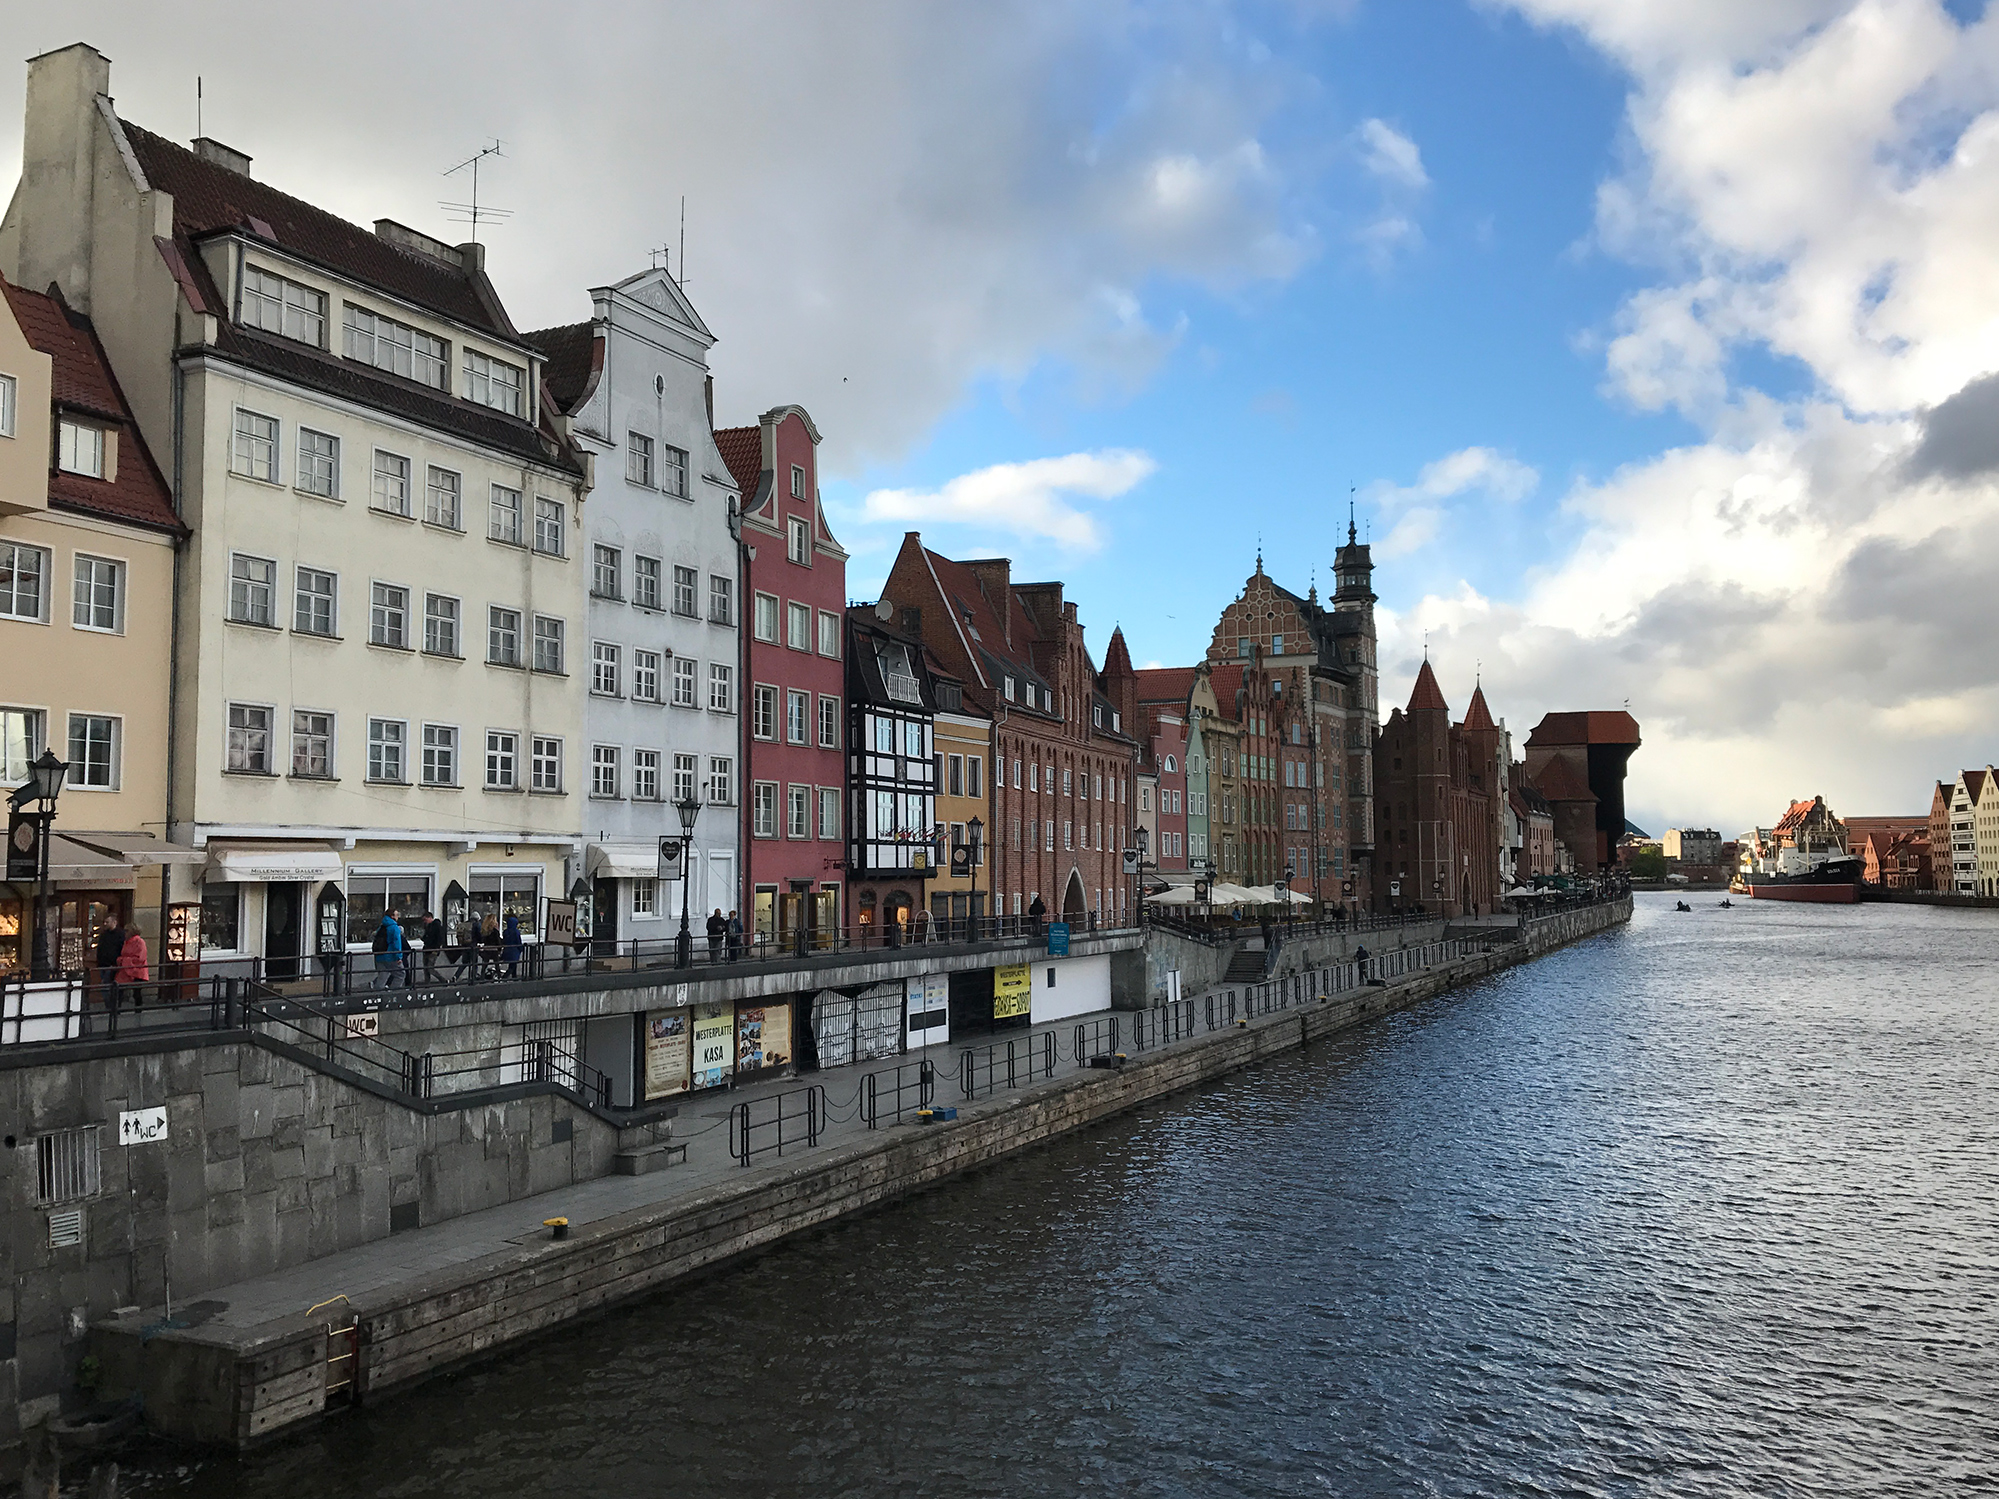 River Motlawa and Old Town, Gdańsk